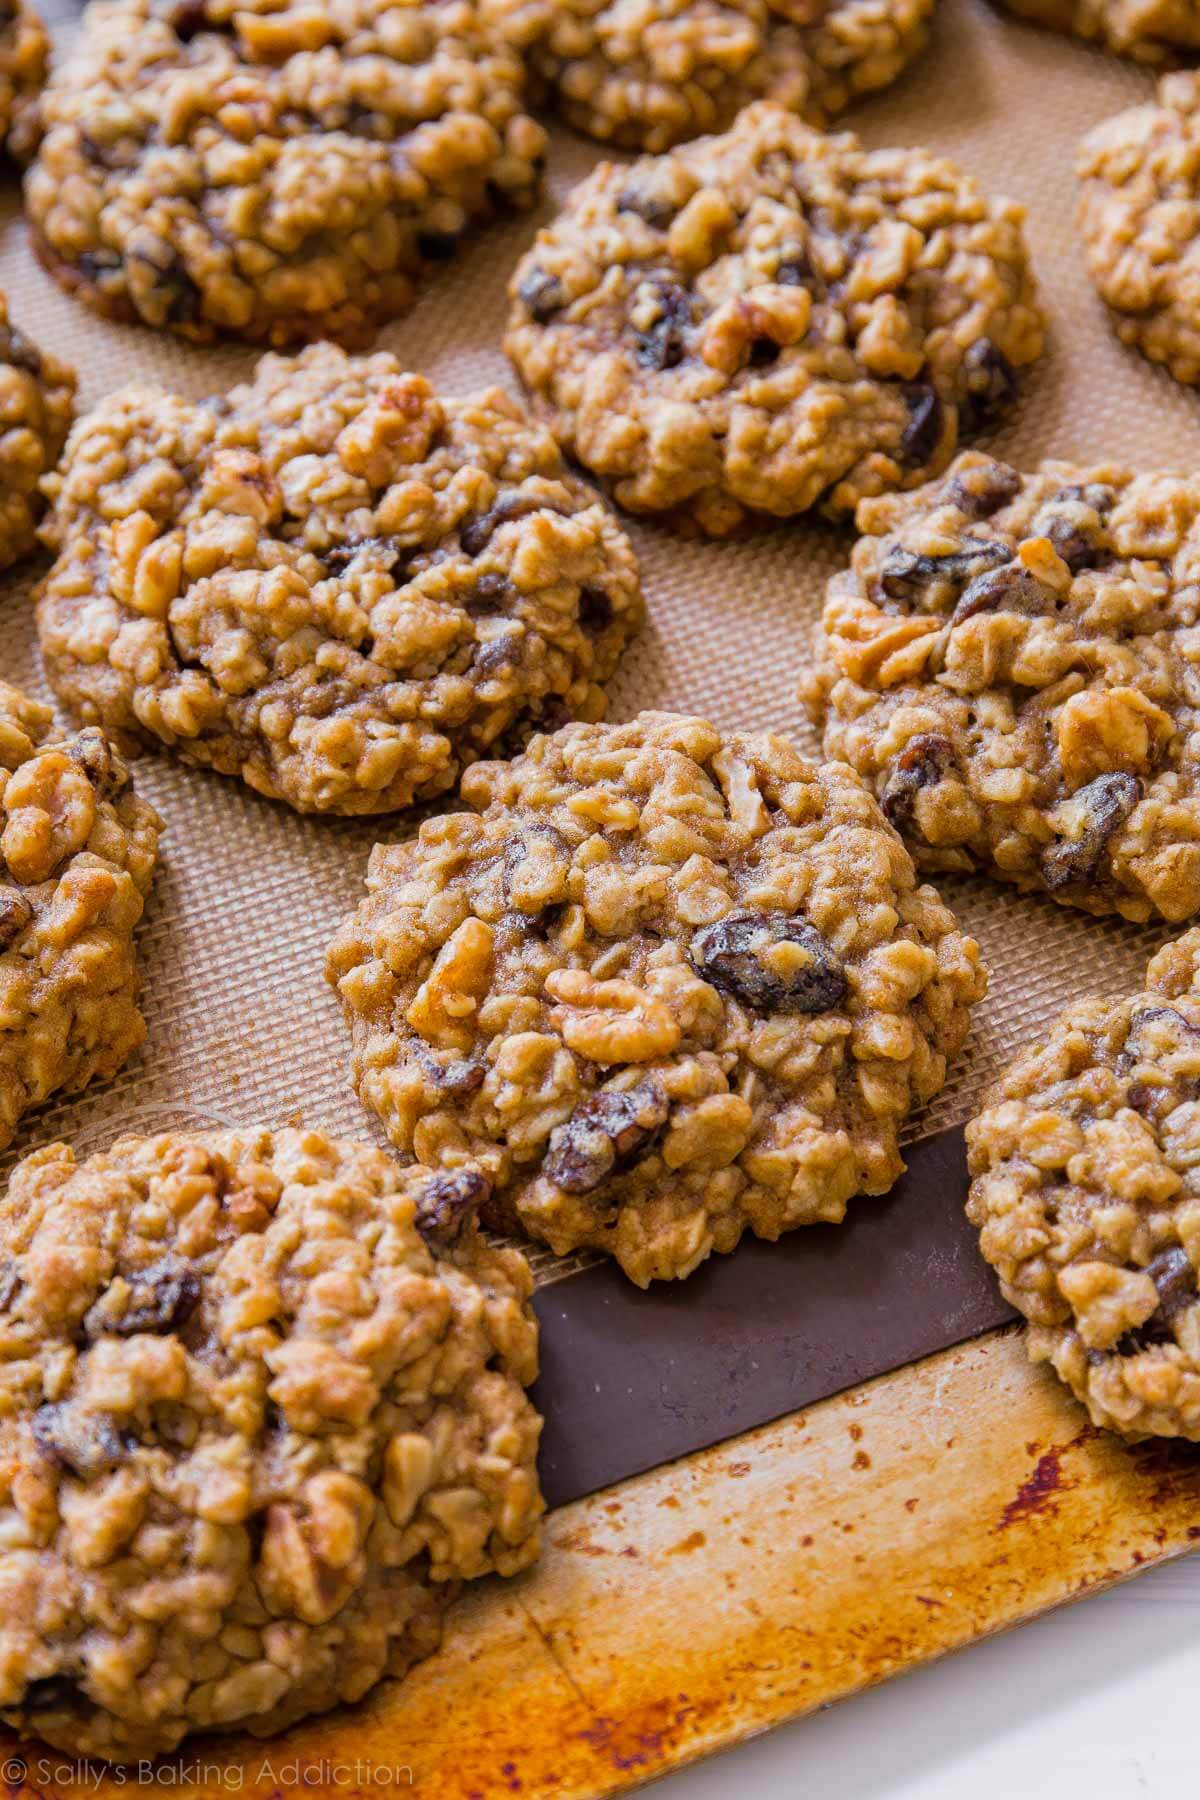 Easy Oatmeal Cookies  Soft & Chewy Oatmeal Raisin Cookies Sallys Baking Addiction